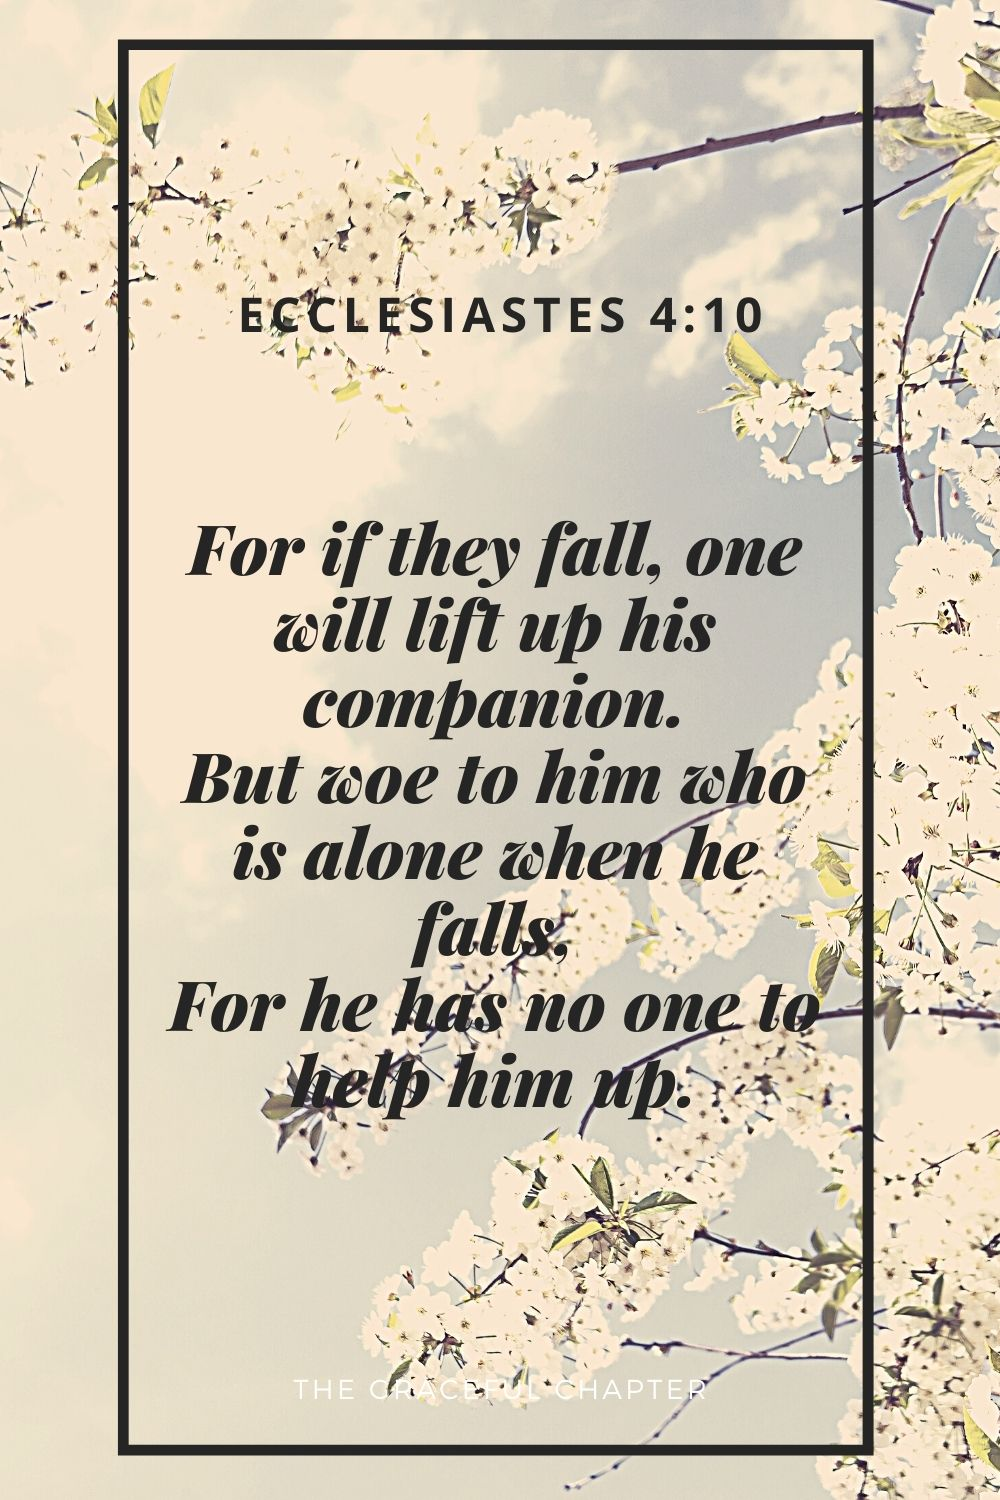 For if they fall, one will lift up his companion. But woe to him who is alone when he falls, For he has no one to help him up. Ecclesiastes 4:10